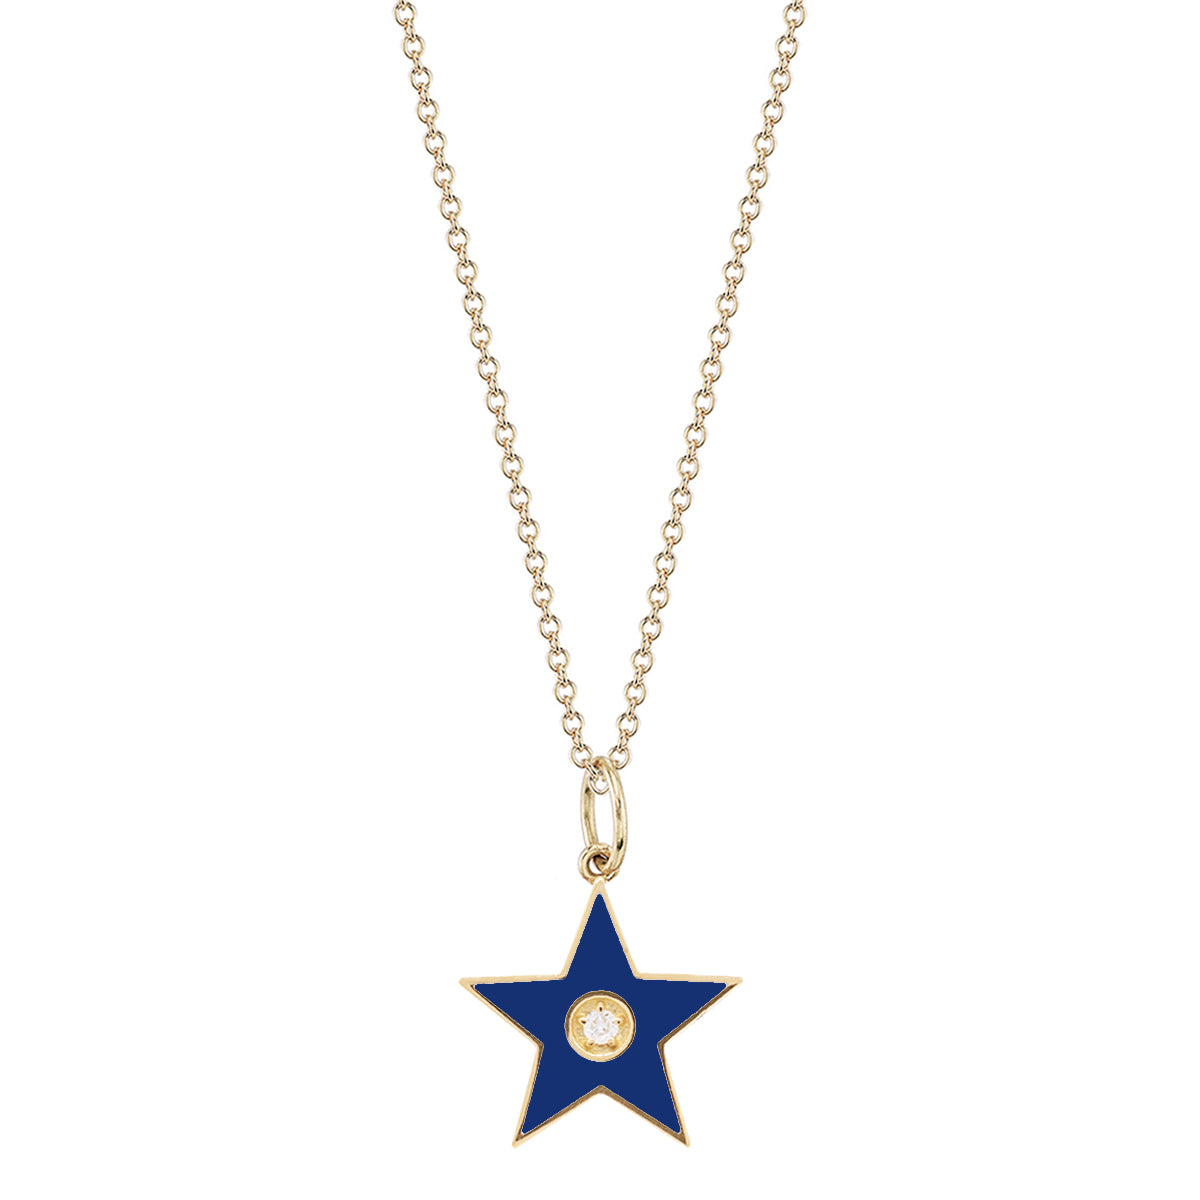 Blue Star Pendant Necklace - Andrea Fohrman - Necklace | Broken English Jewelry